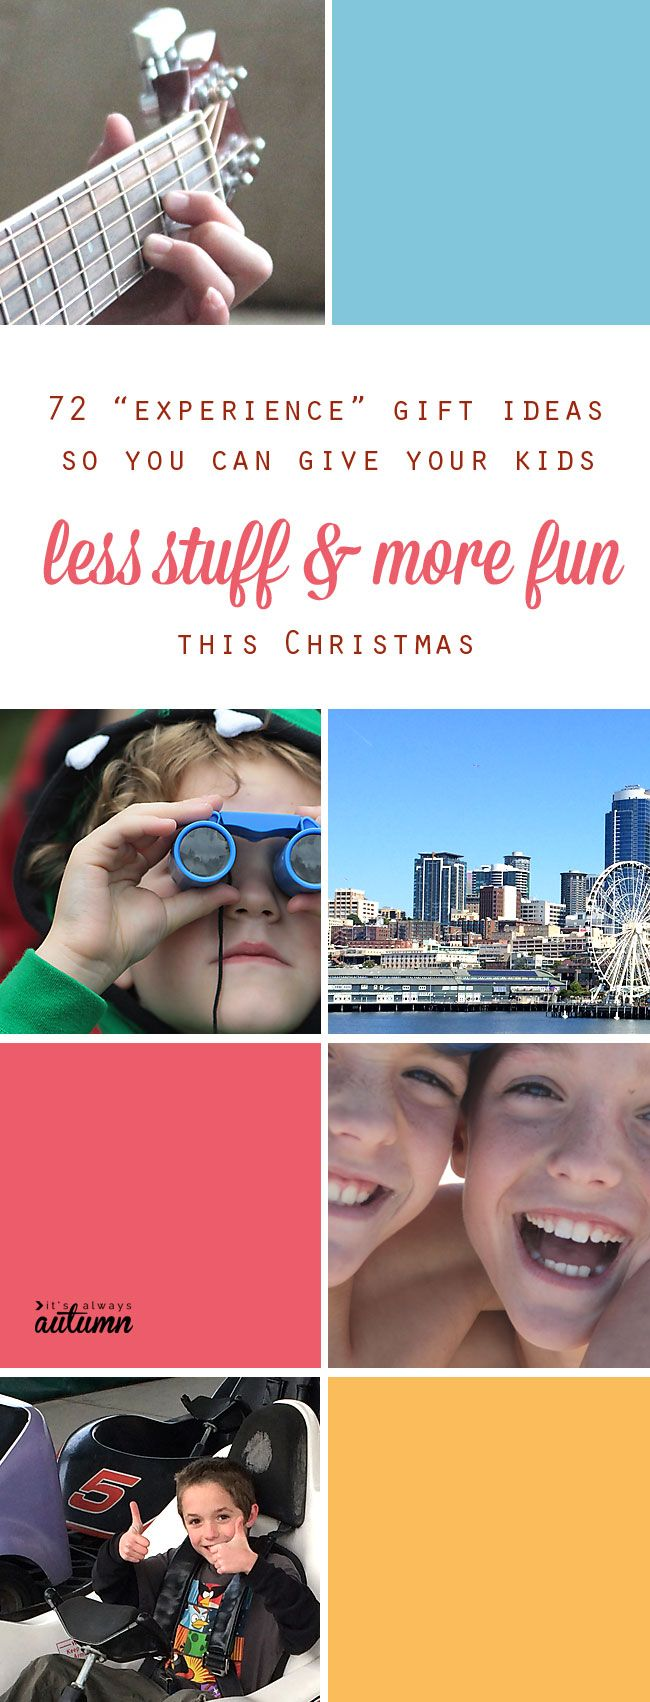 great Christmas gift ideas! give kids experiences instead of stuff - over 72 great gift ideas that will give your kids less tuff and more fun.